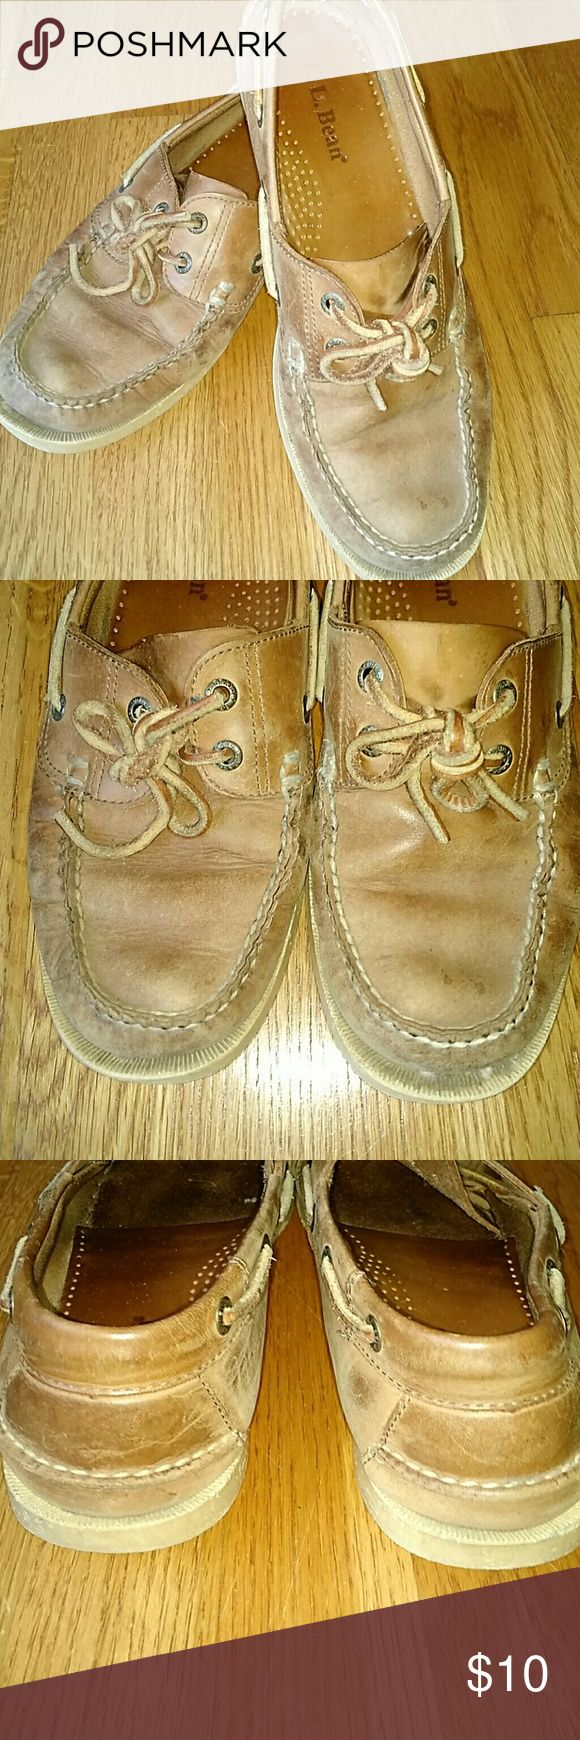 LL Bean Topsiders LL Bean Topsiders. Mens size 9.5 Well used but still plenty of life left in them. L.L. Bean Shoes Boat Shoes